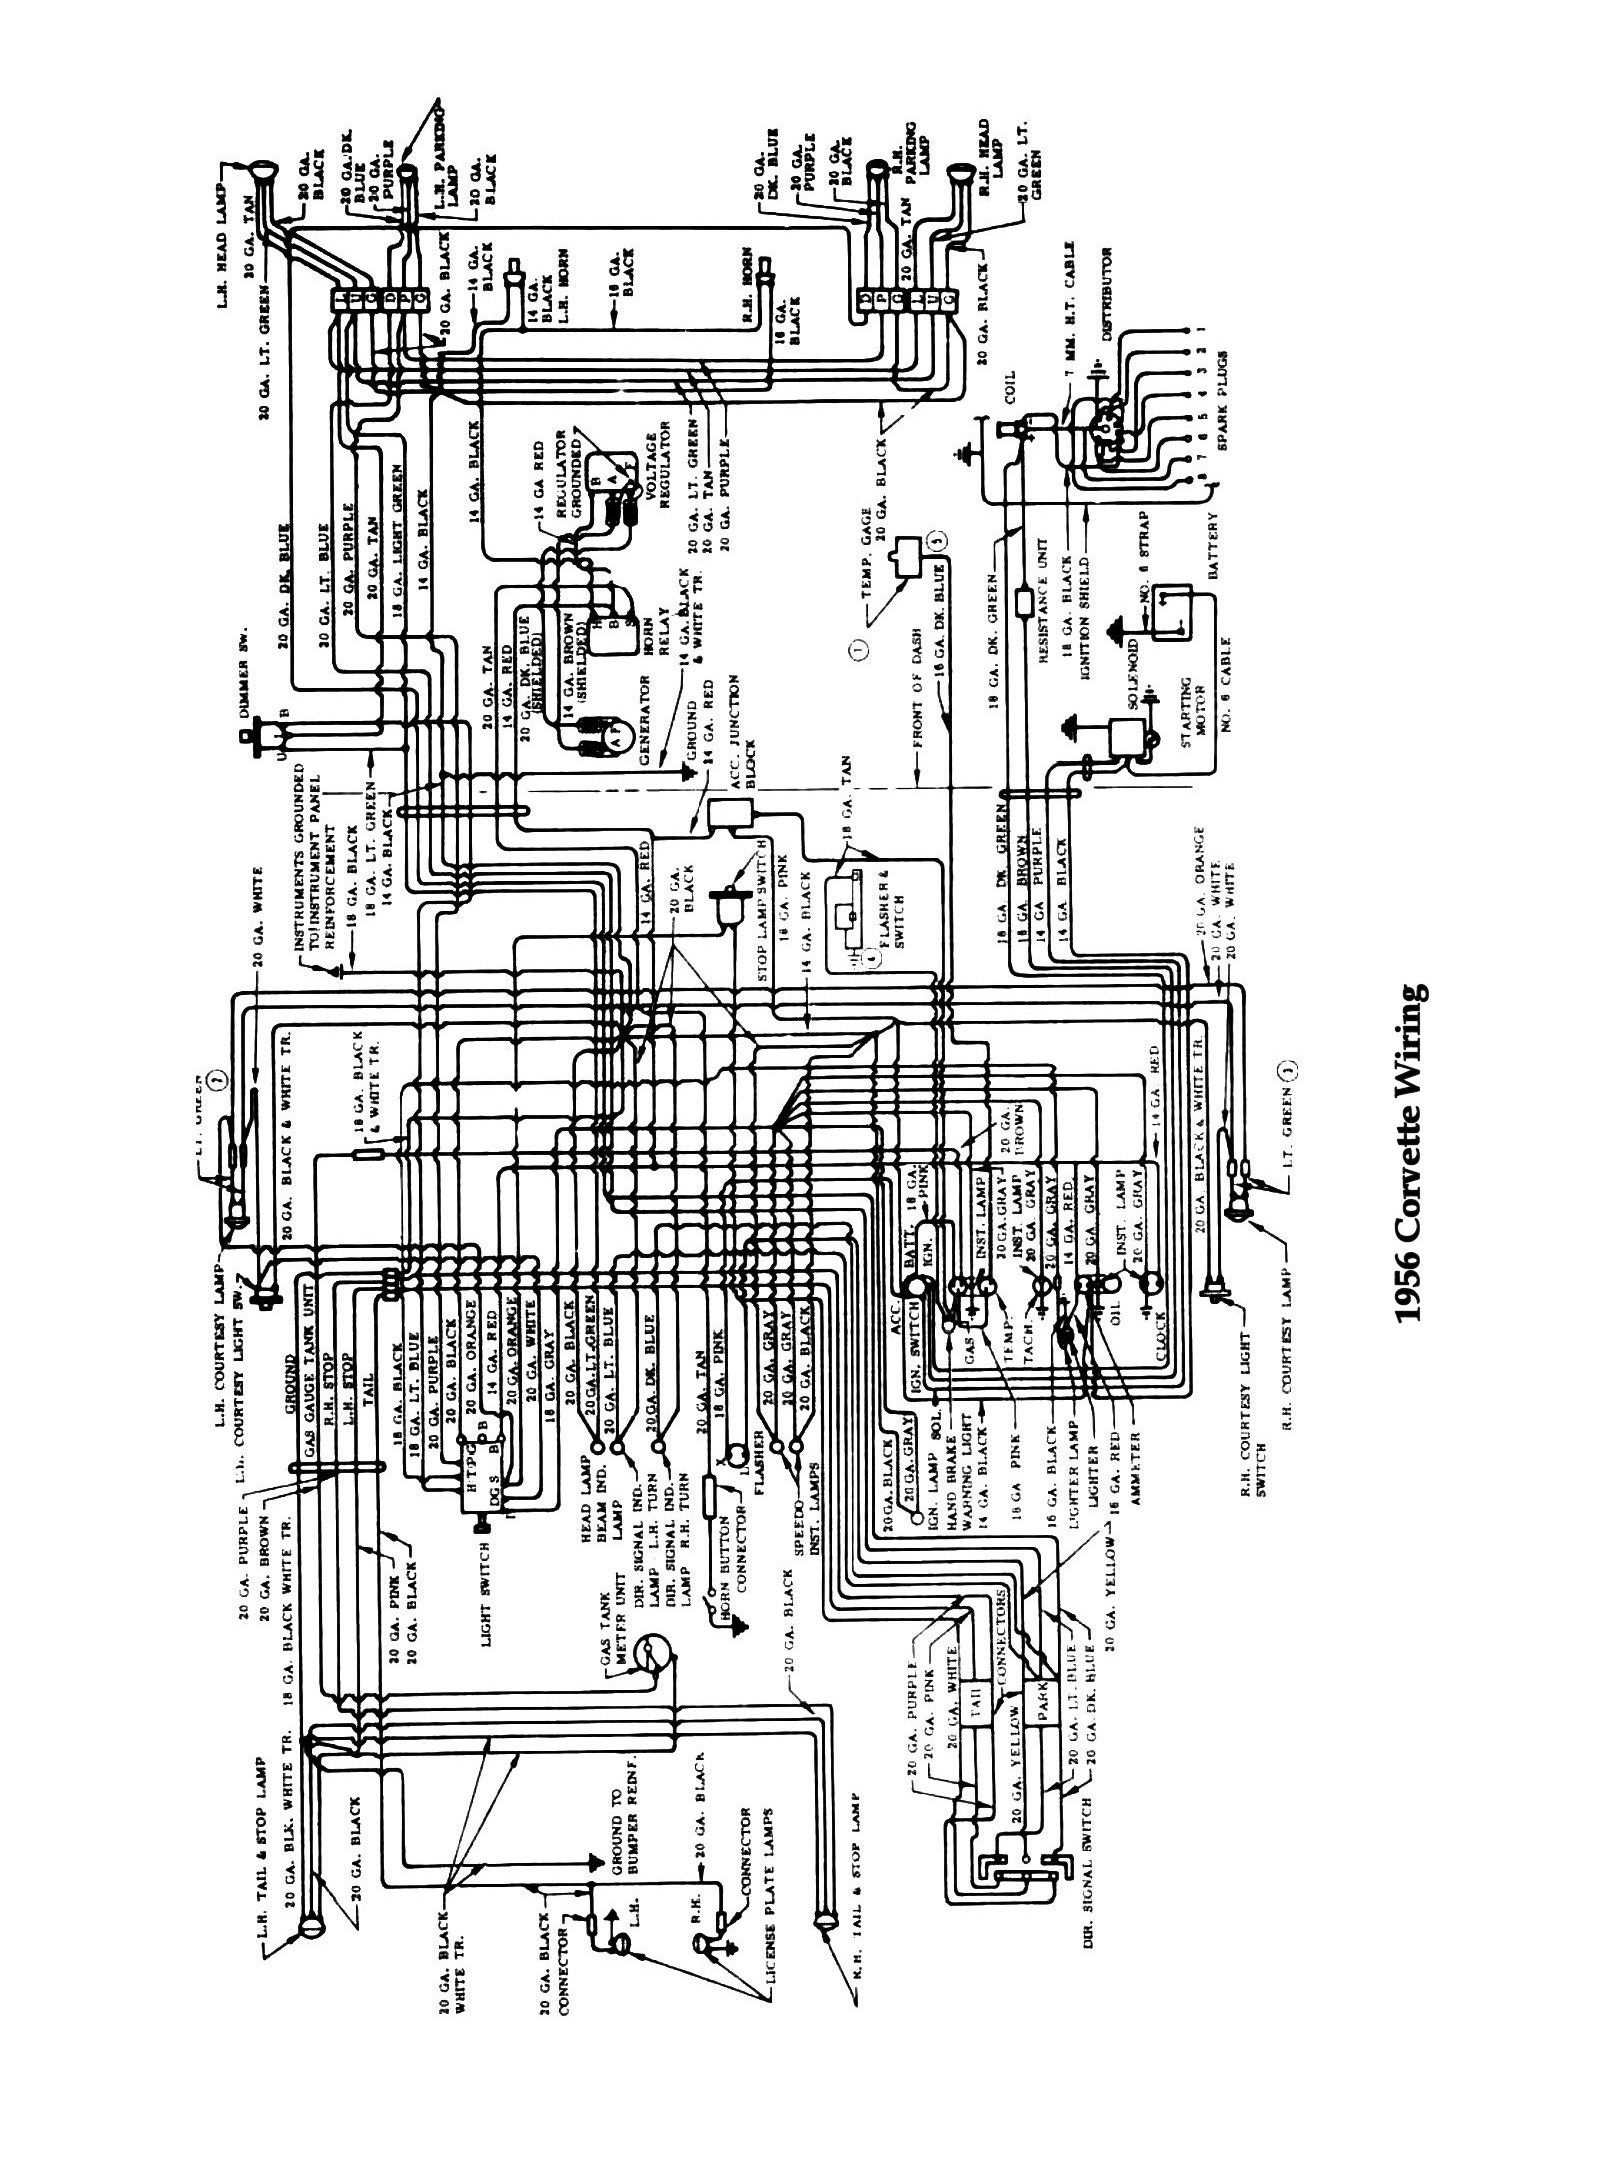 1958 corvette wiring diagram 1 hyn capecoral bootsvermietung de \u2022chevy wiring diagrams rh chevy oldcarmanualproject com 1968 corvette wiring diagram with color 1979 corvette wiring